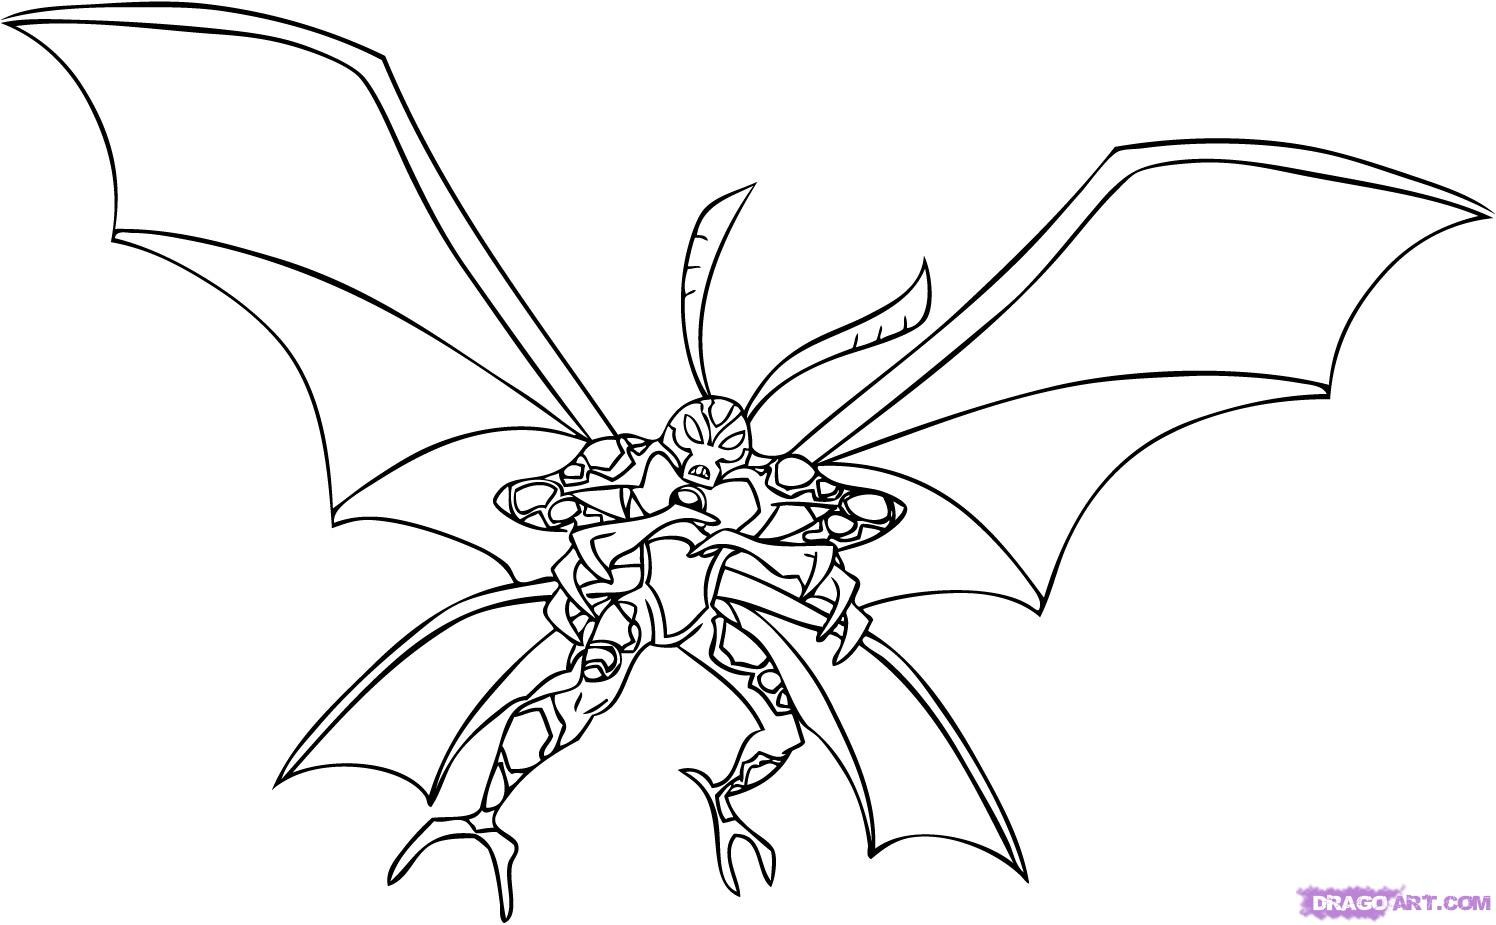 Ben 10 Alien Force Coloring Pages - Eskayalitim